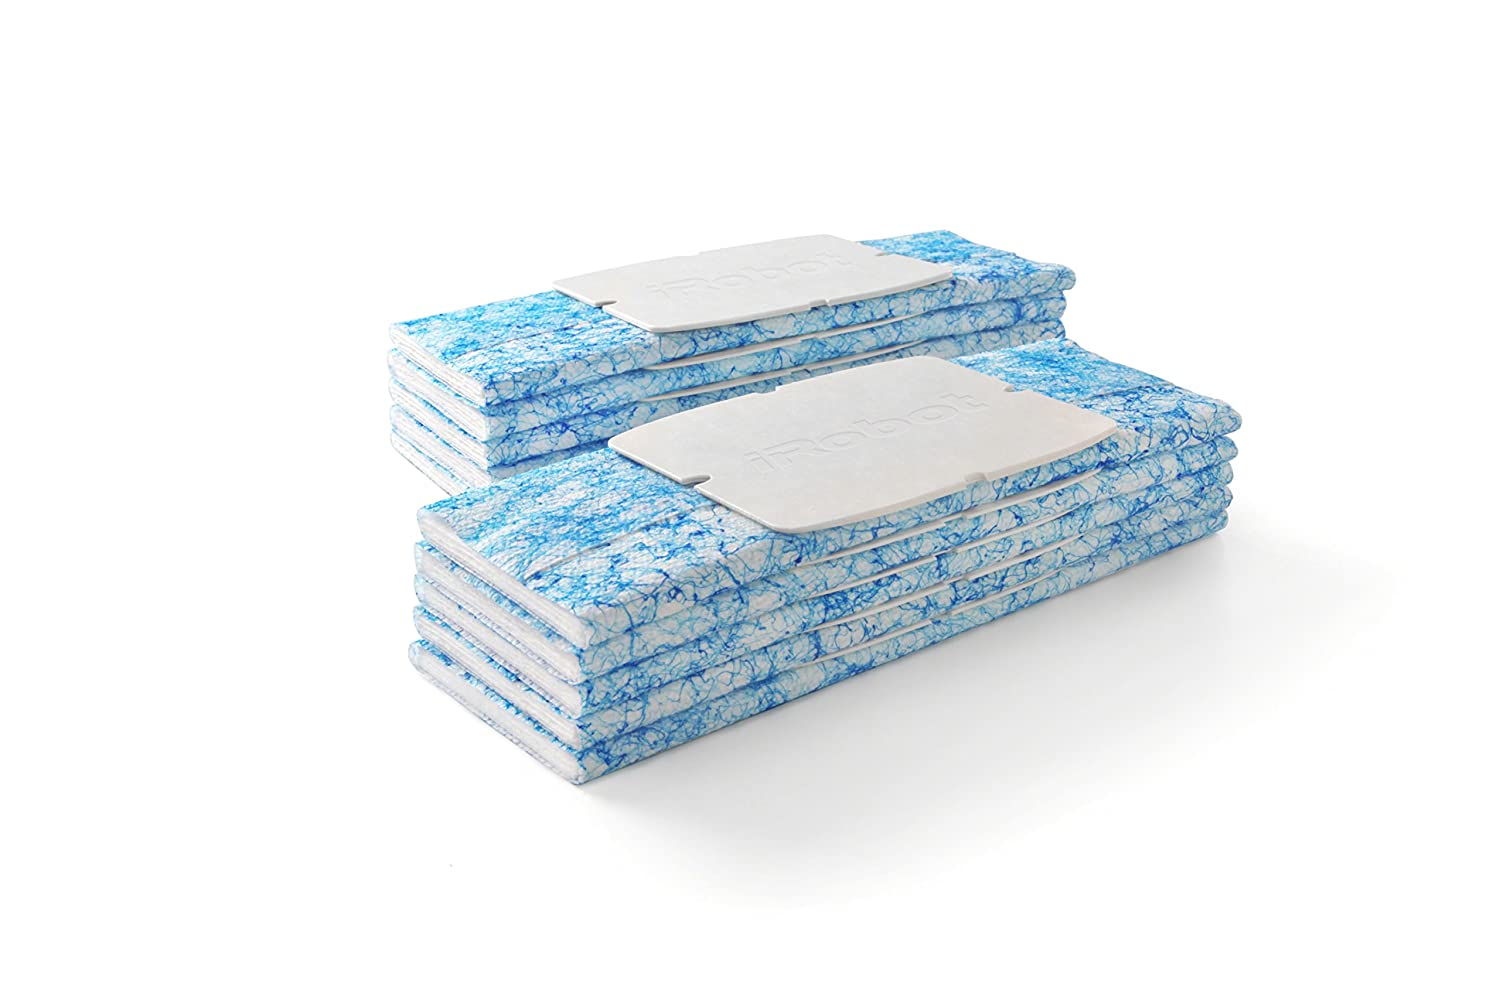 iRobot Braava Jet - Scrub cleaning cloths, pack of 10 units